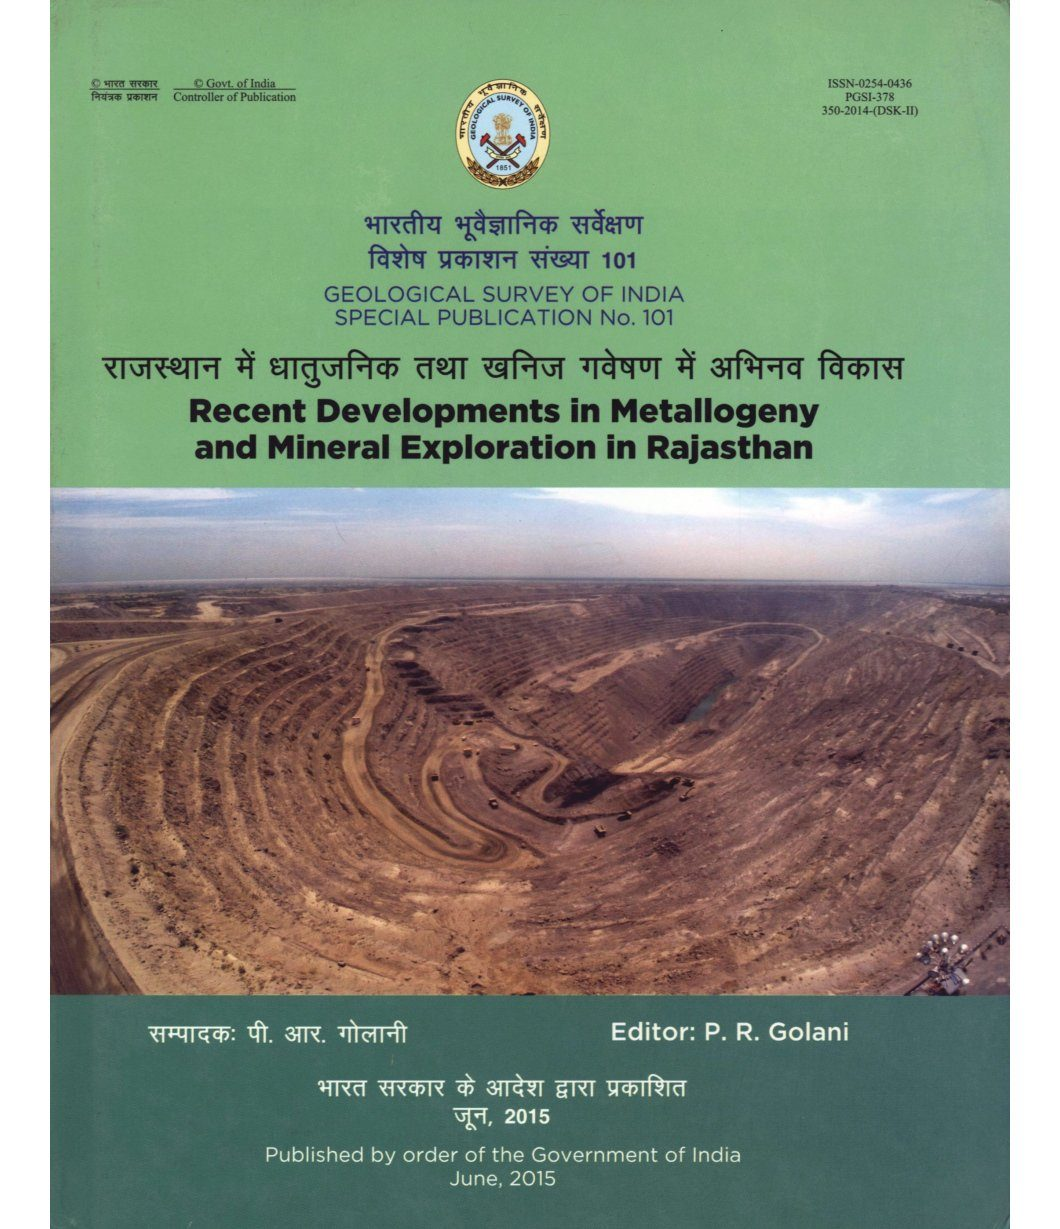 Recent Developments in Metallogeny and Mineral Exploration in Rajasthan